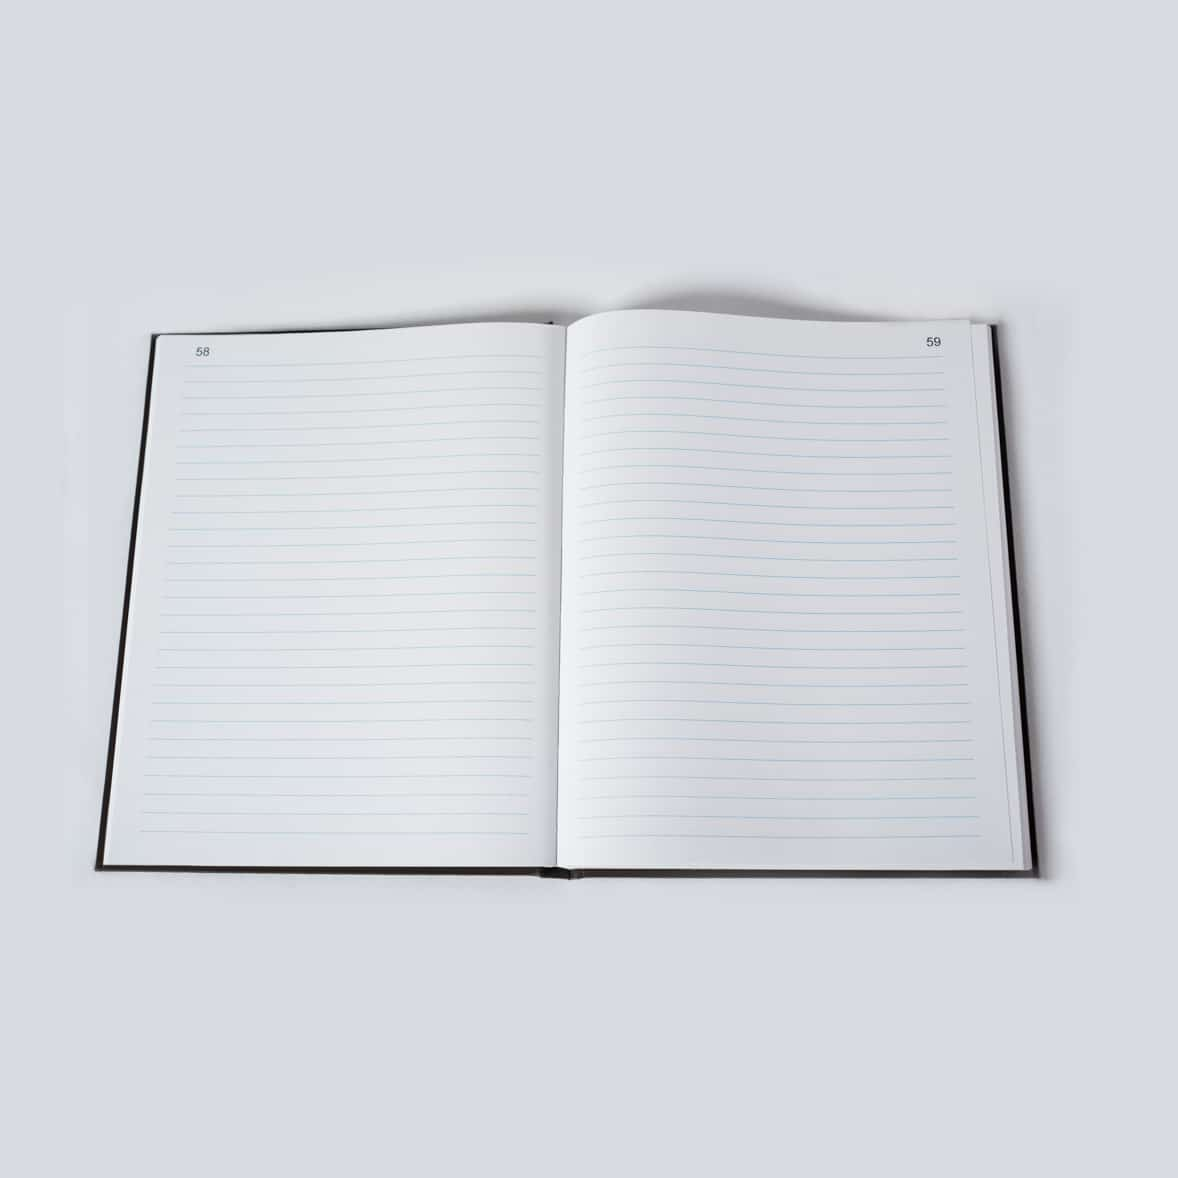 Plain Lined Laboratory Notebook - Scientific Bindery